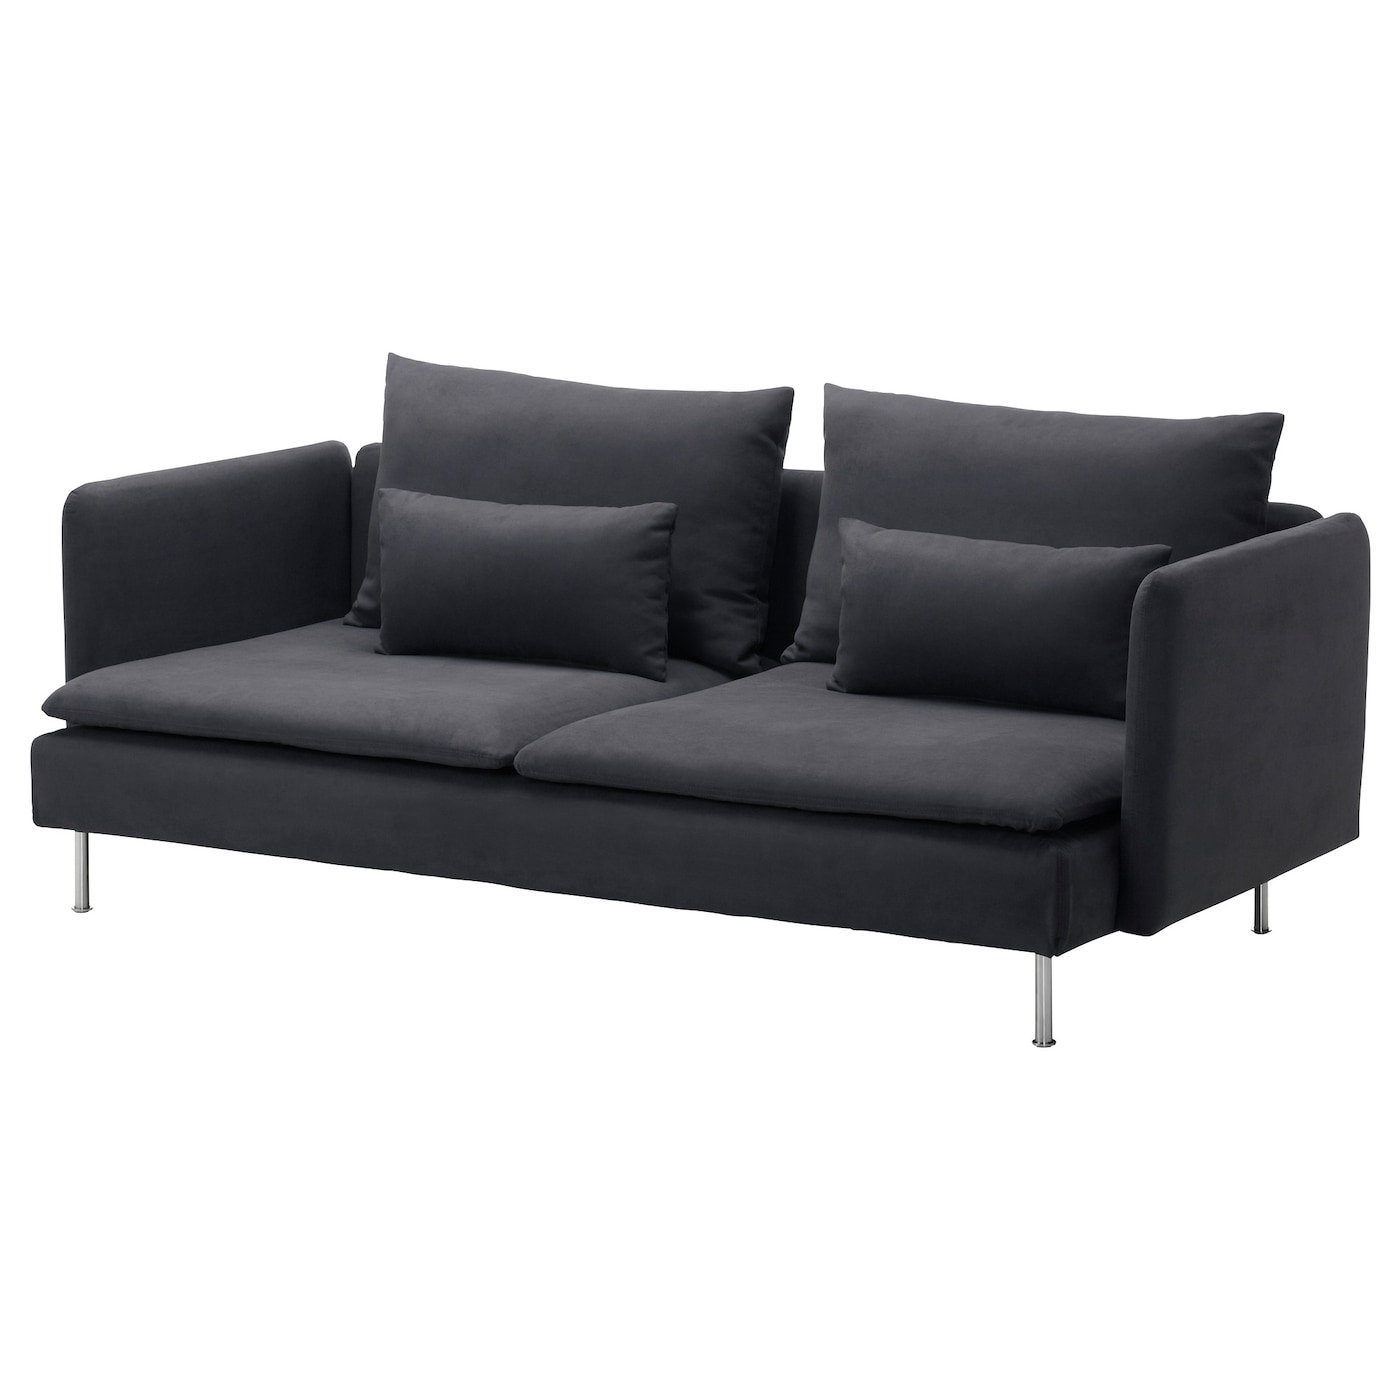 S derhamn three seat sofa samsta dark grey ikea for Ikea canape cuir